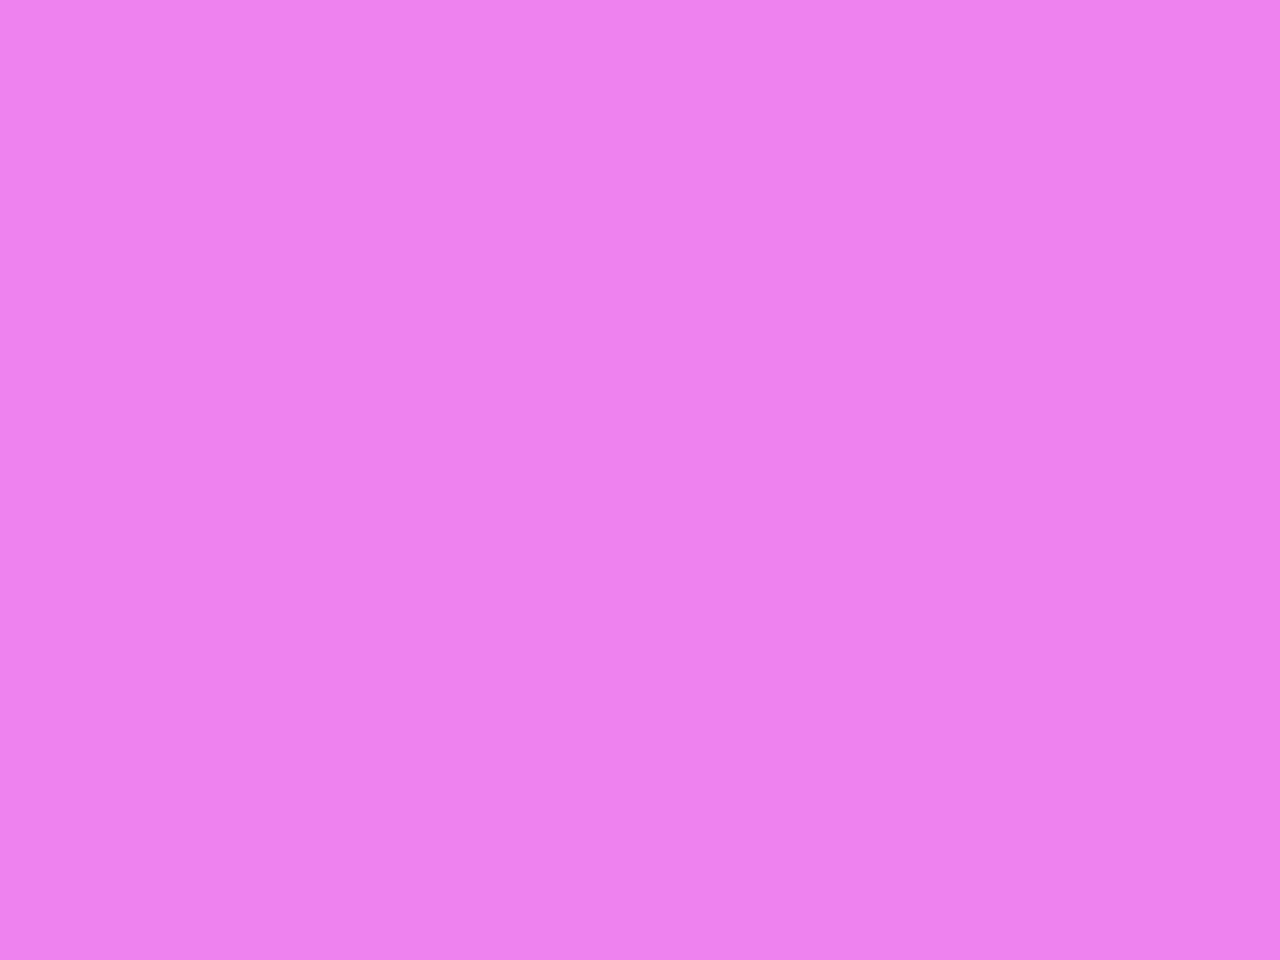 1280x960 Lavender Magenta Solid Color Background